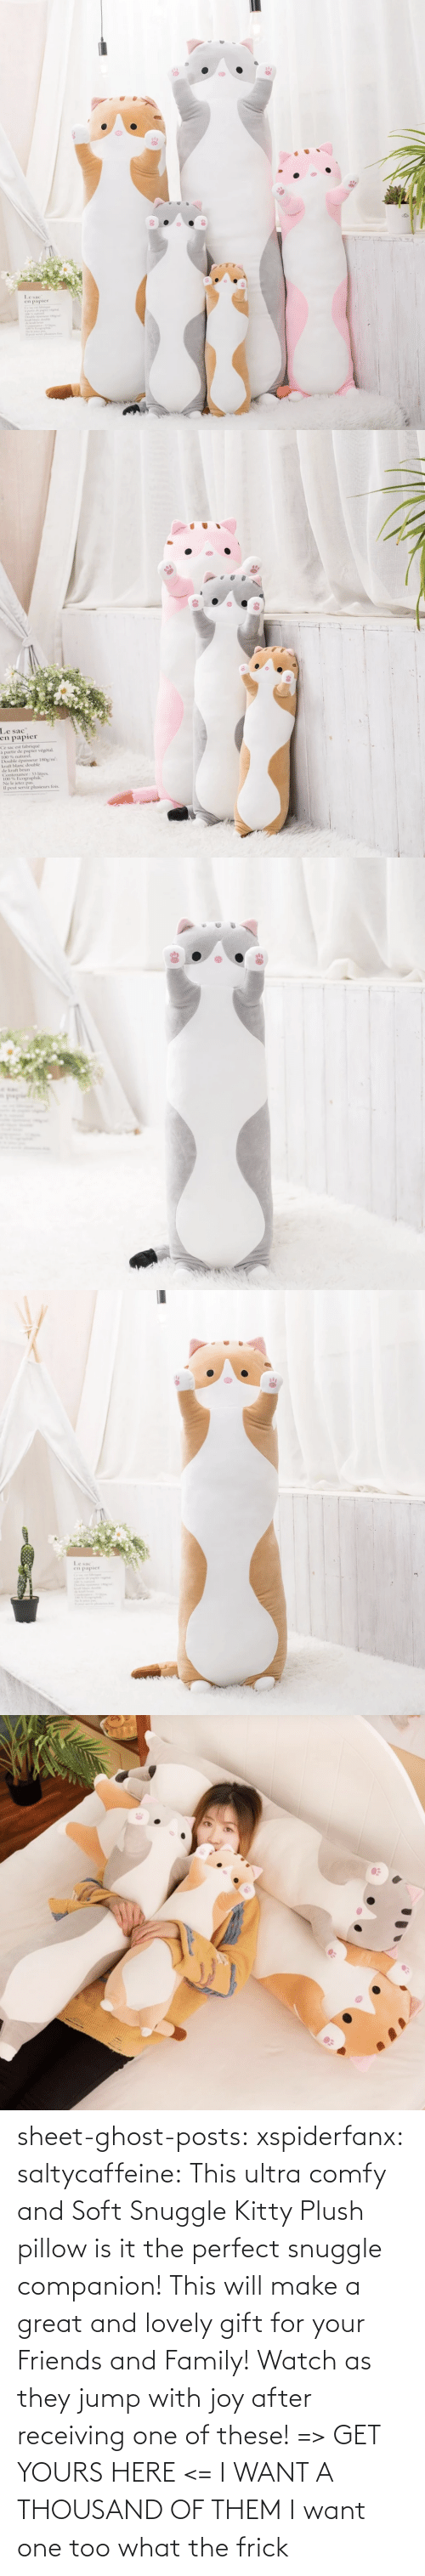 Frick: sheet-ghost-posts: xspiderfanx:  saltycaffeine:  This ultra comfy and Soft Snuggle Kitty Plush pillow is it the perfect snuggle companion! This will make a great and lovely gift for your Friends and Family! Watch as they jump with joy after receiving one of these! => GET YOURS HERE <=    I WANT A THOUSAND OF THEM  I want one too what the frick